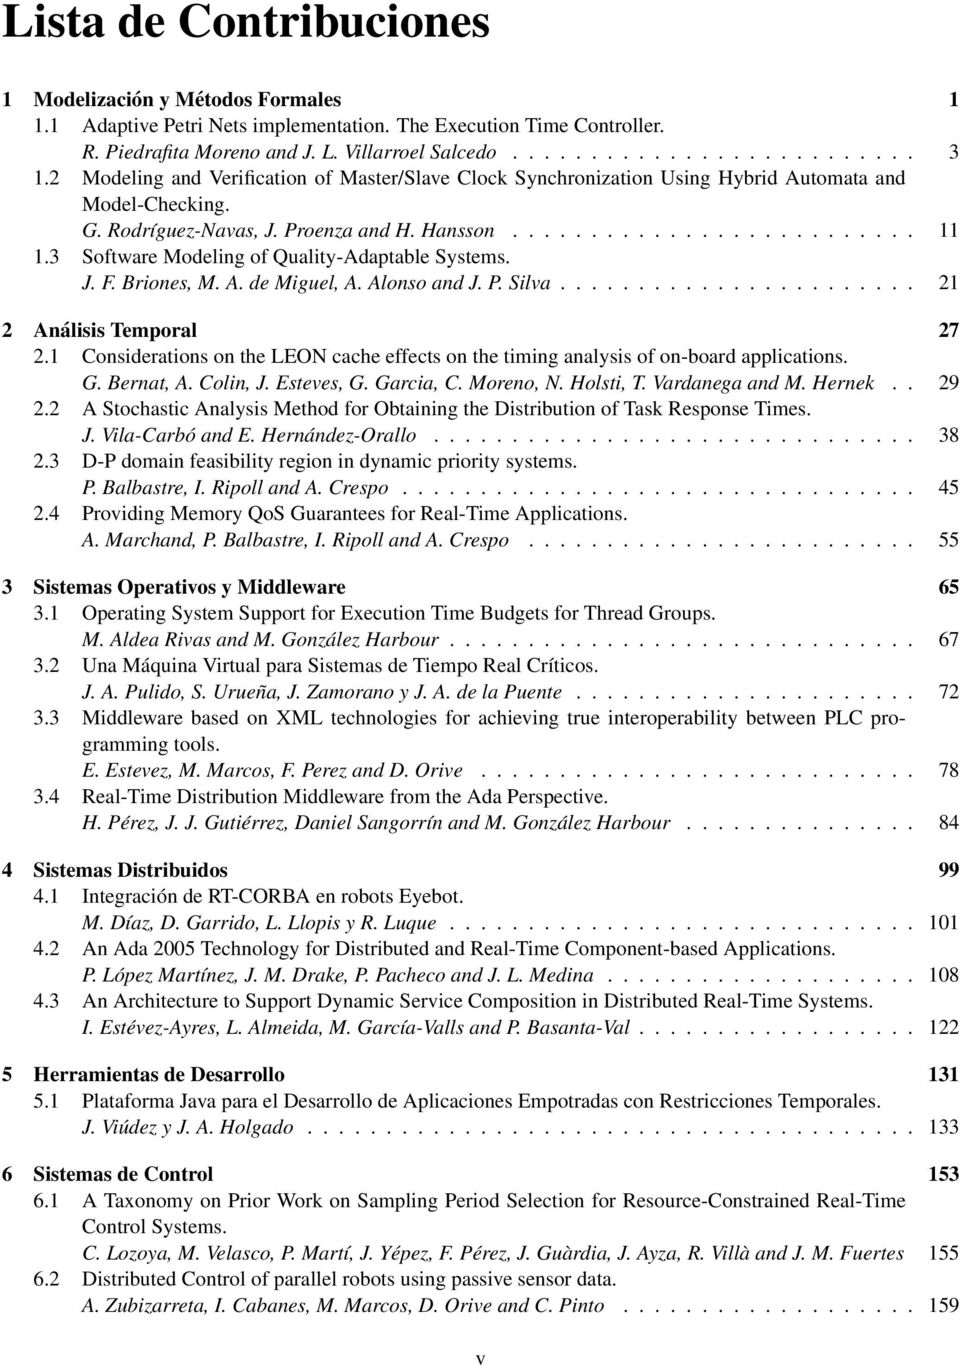 3 Software Modeling of Quality-Adaptable Systems. J. F. Briones, M. A. de Miguel, A. Alonso and J. P. Silva....................... 21 2 Análisis Temporal 27 2.